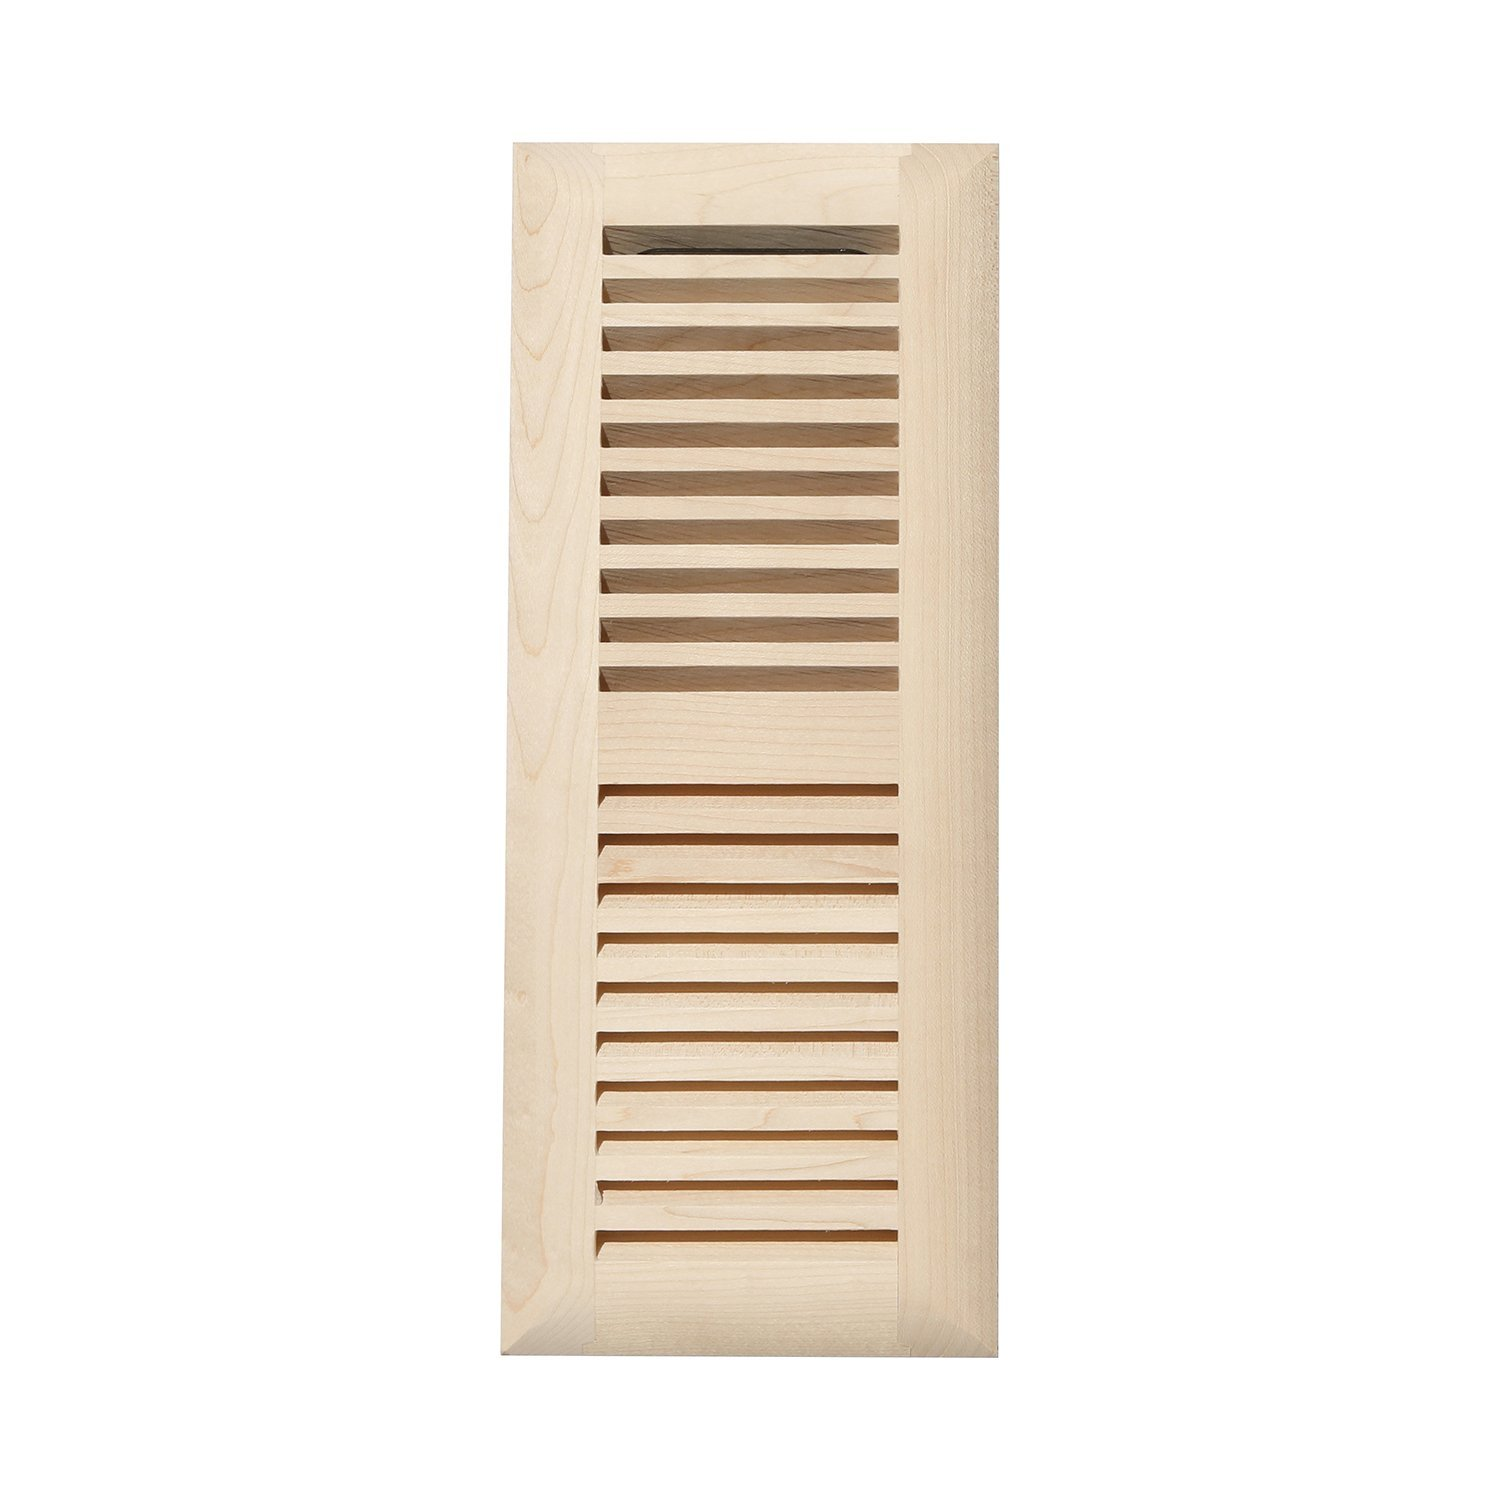 Unfinished Maple Decor Grates WMLF412-U 4-Inch by 12-Inch Wood Flushmount Floor Register